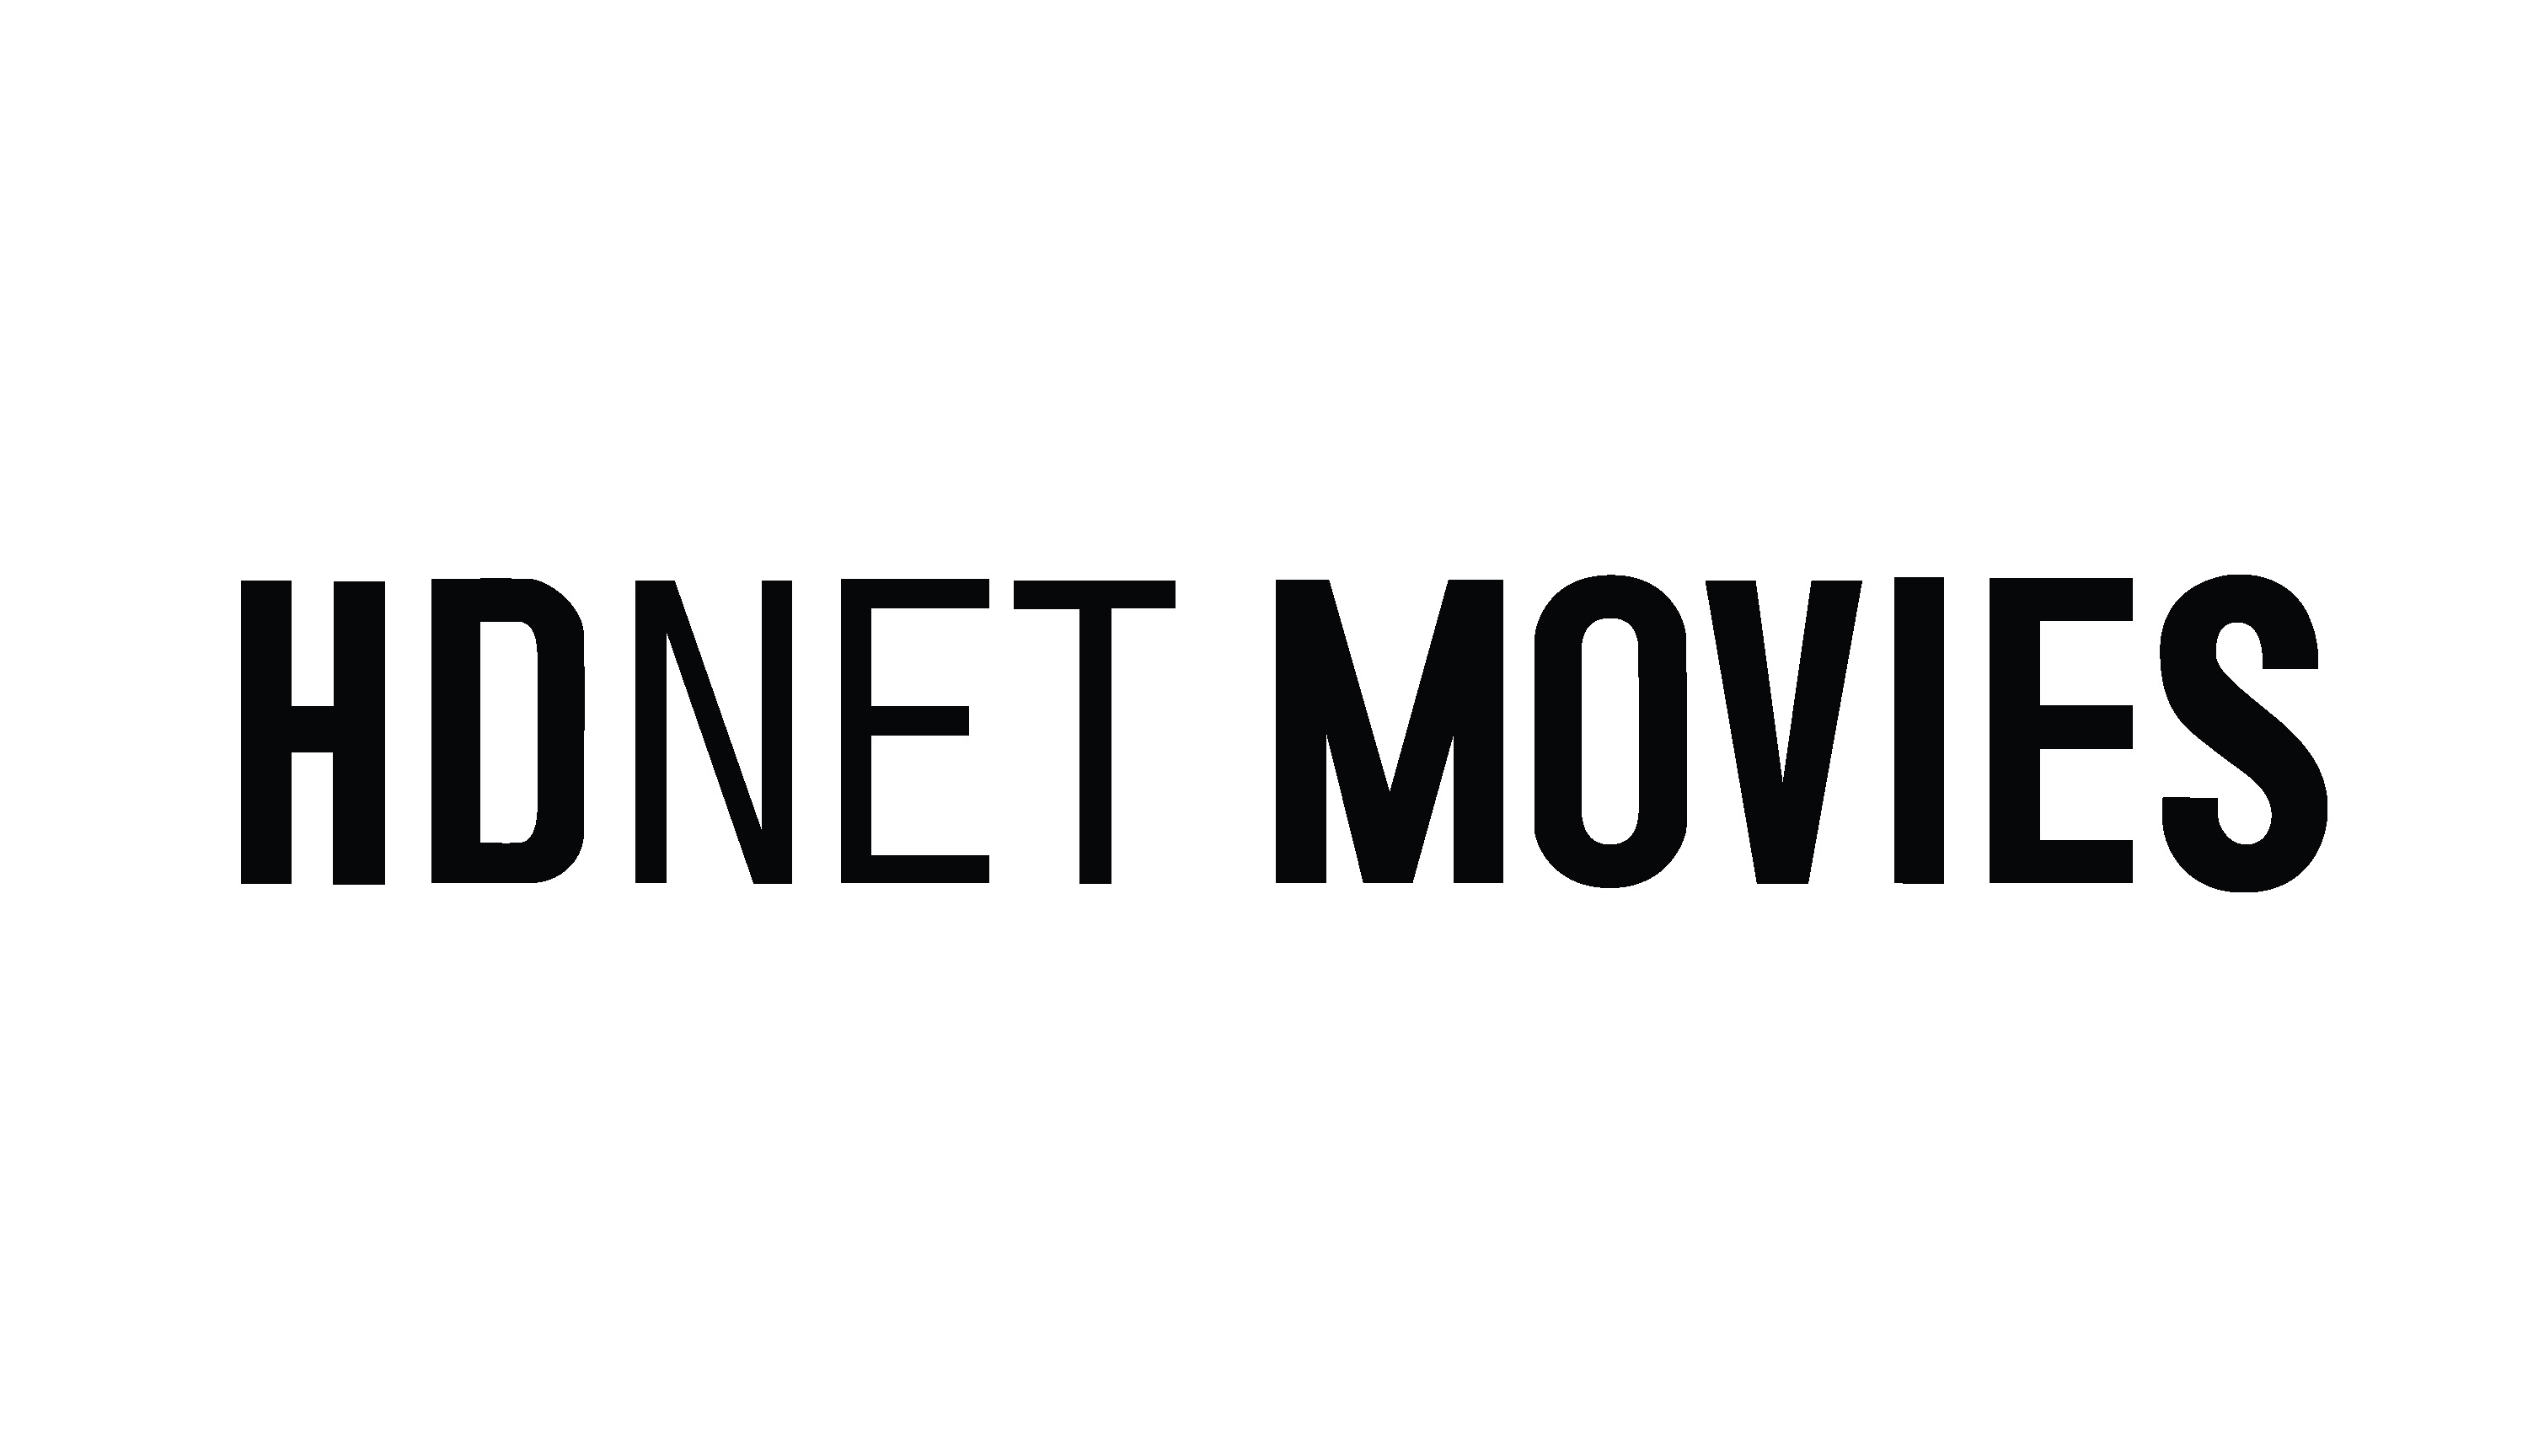 hdnet movies - tv listings guide